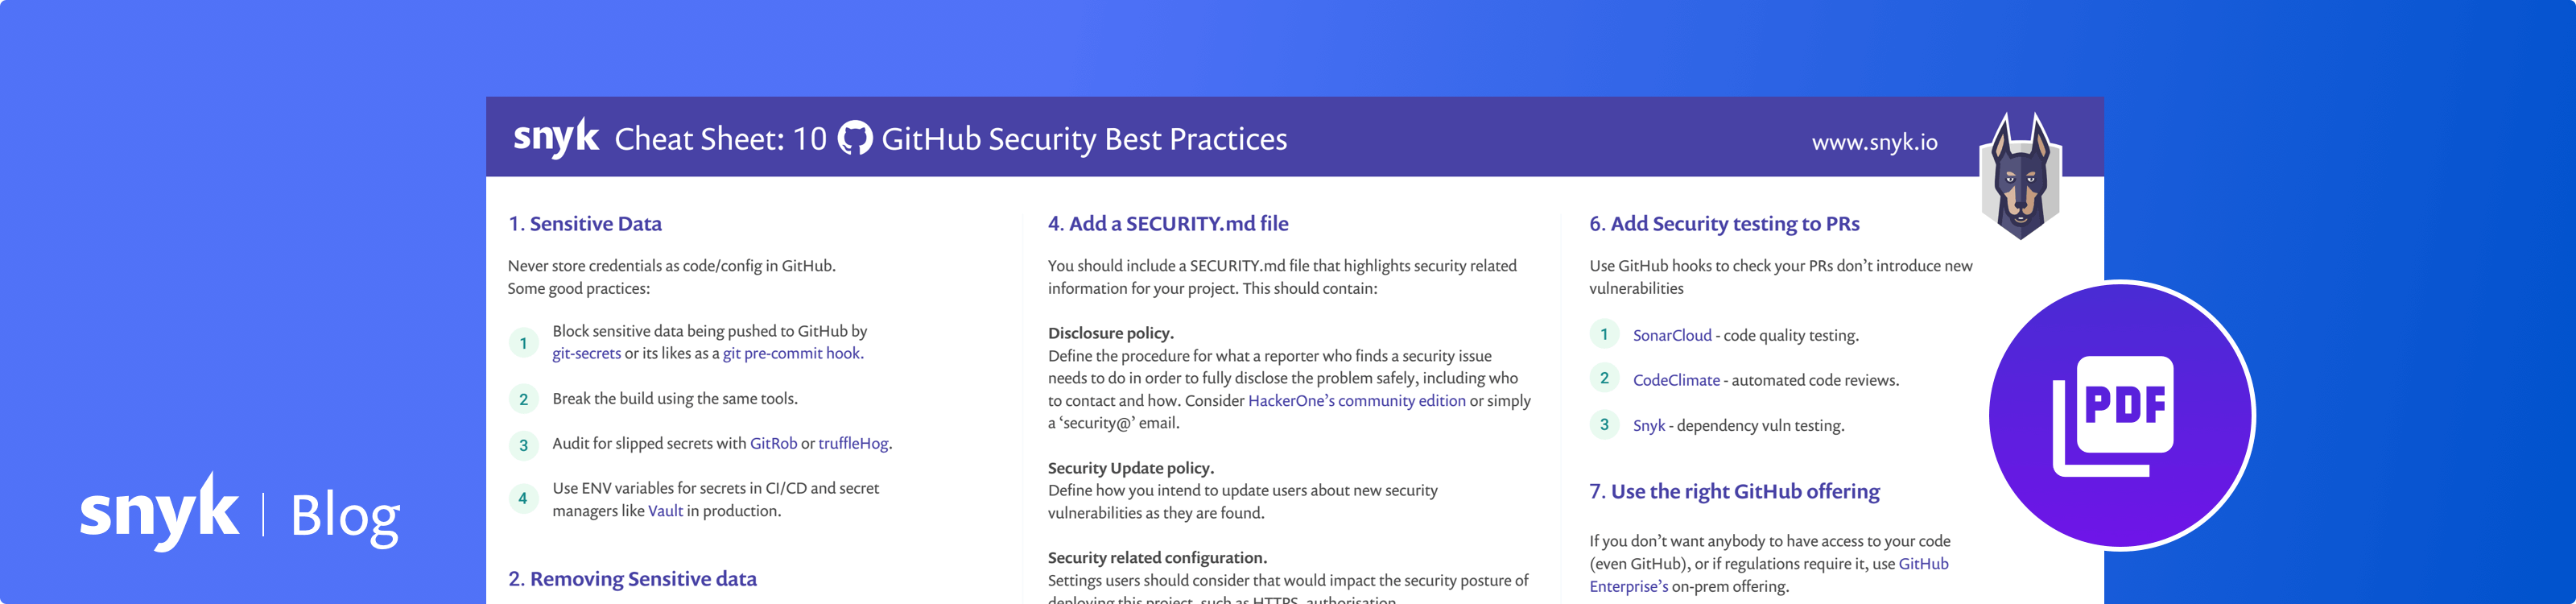 10 GitHub Security Best Practices | Snyk